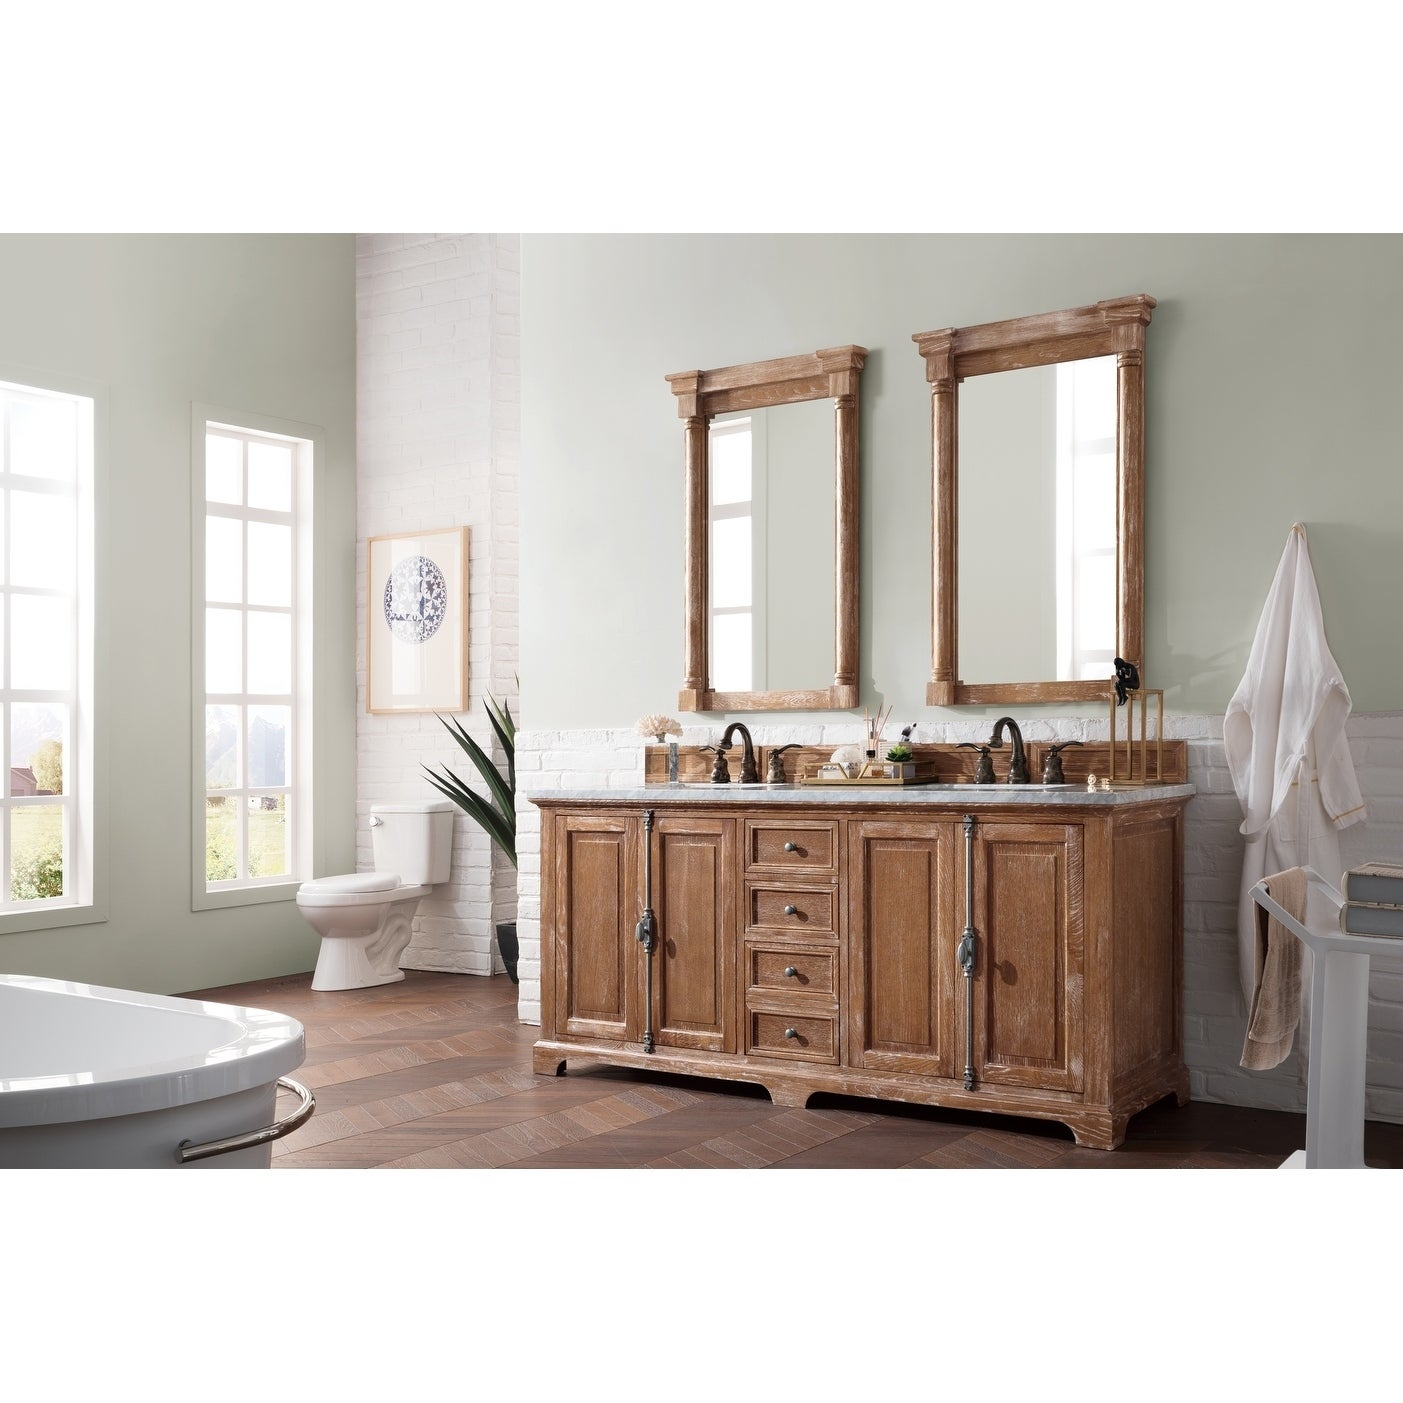 double overstock free vanity product american shipping metropolitan home garden today walnut